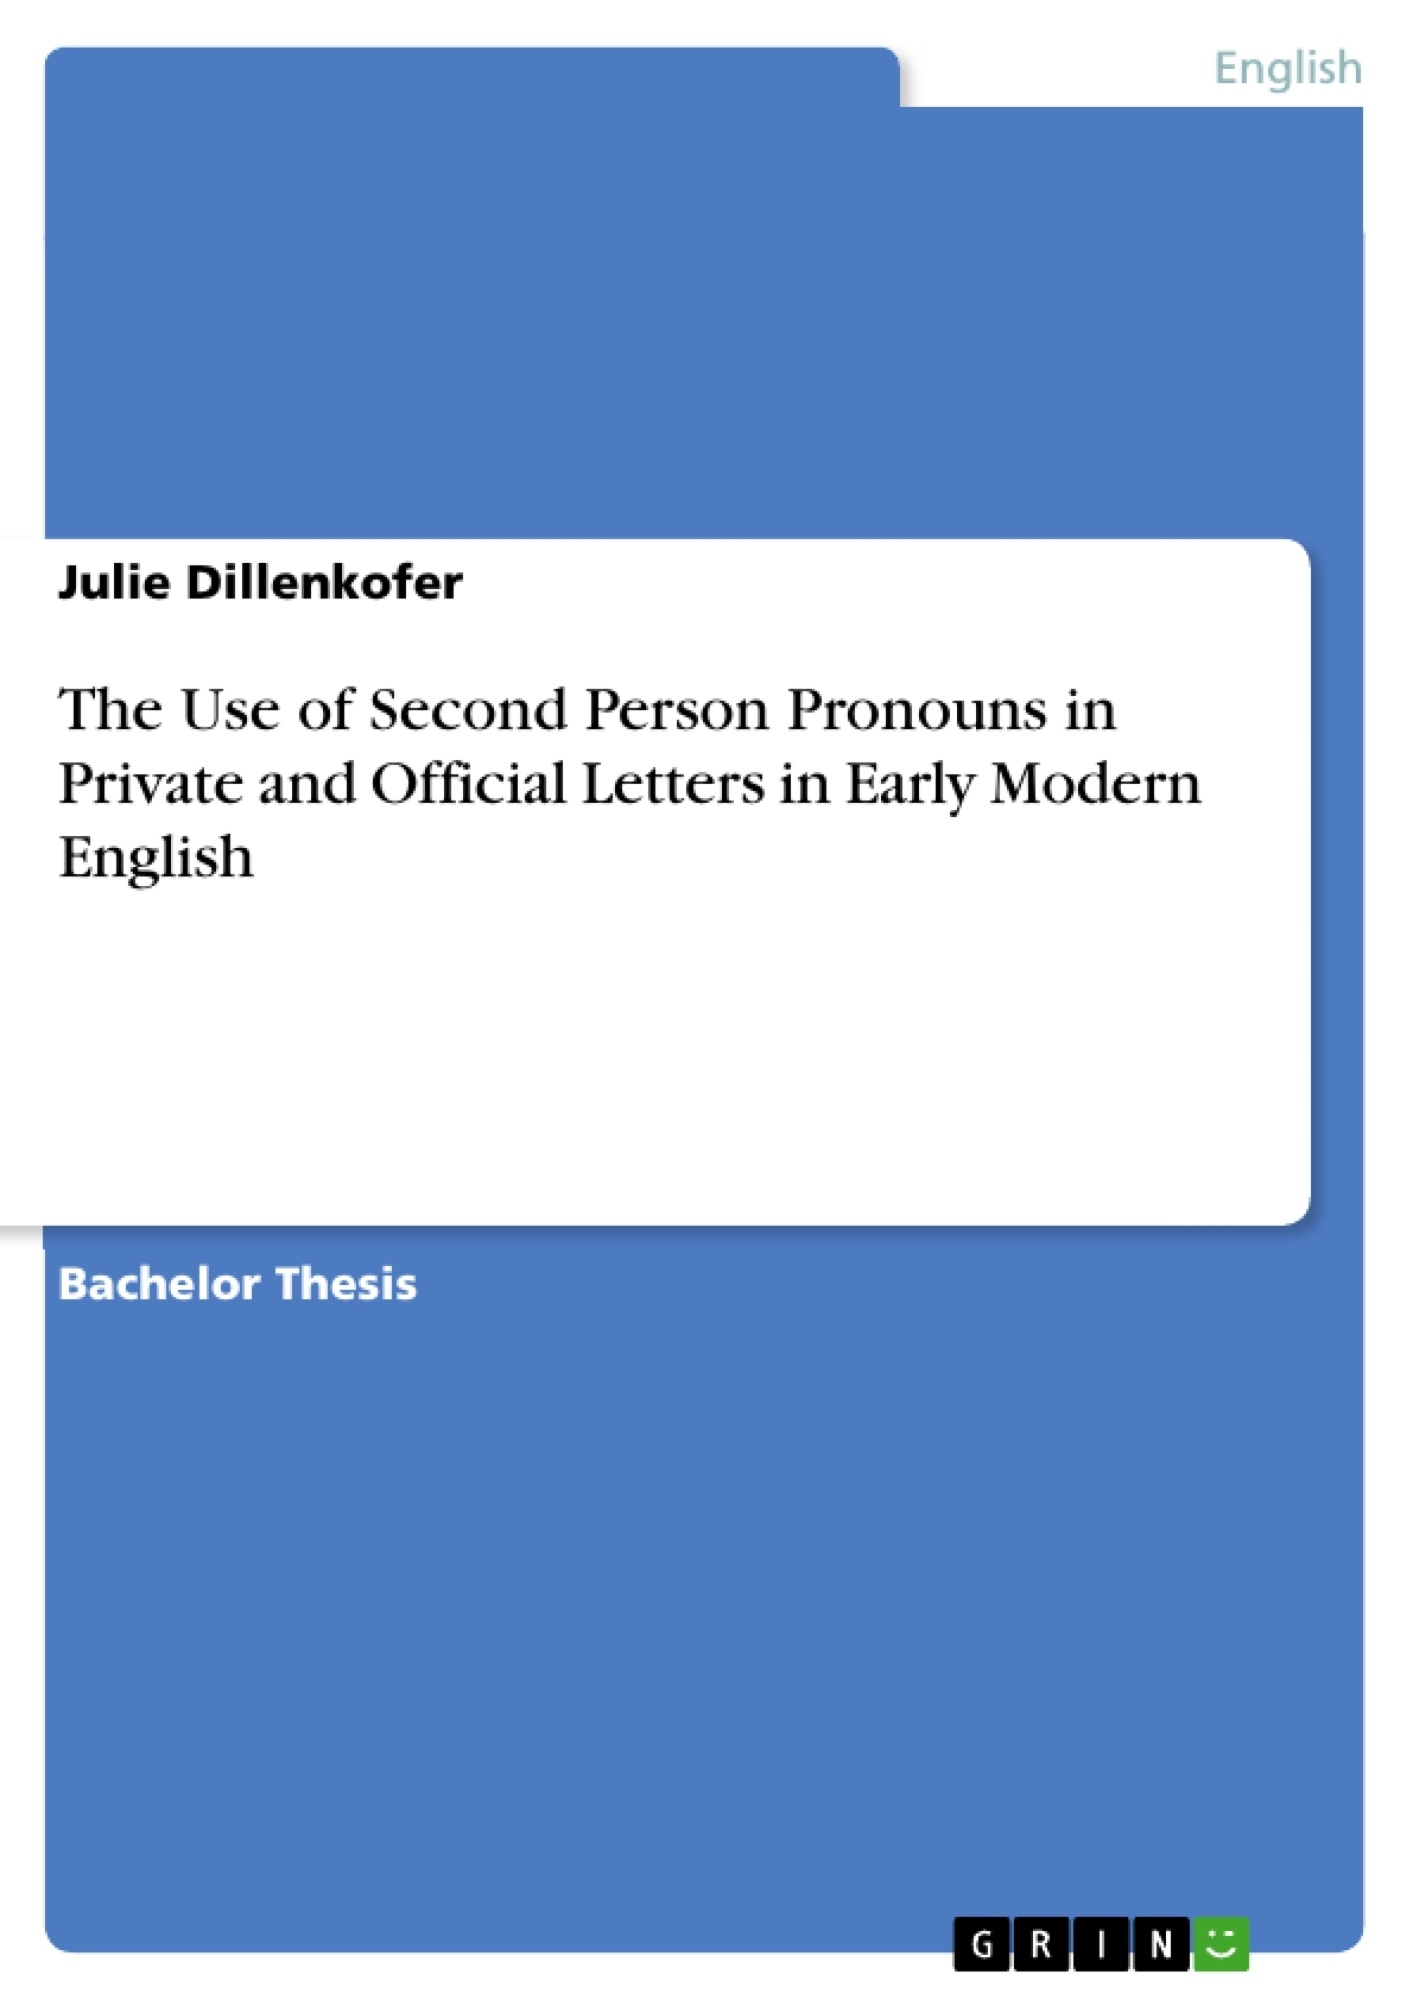 Title: The Use of Second Person Pronouns in Private and Official Letters in Early Modern English